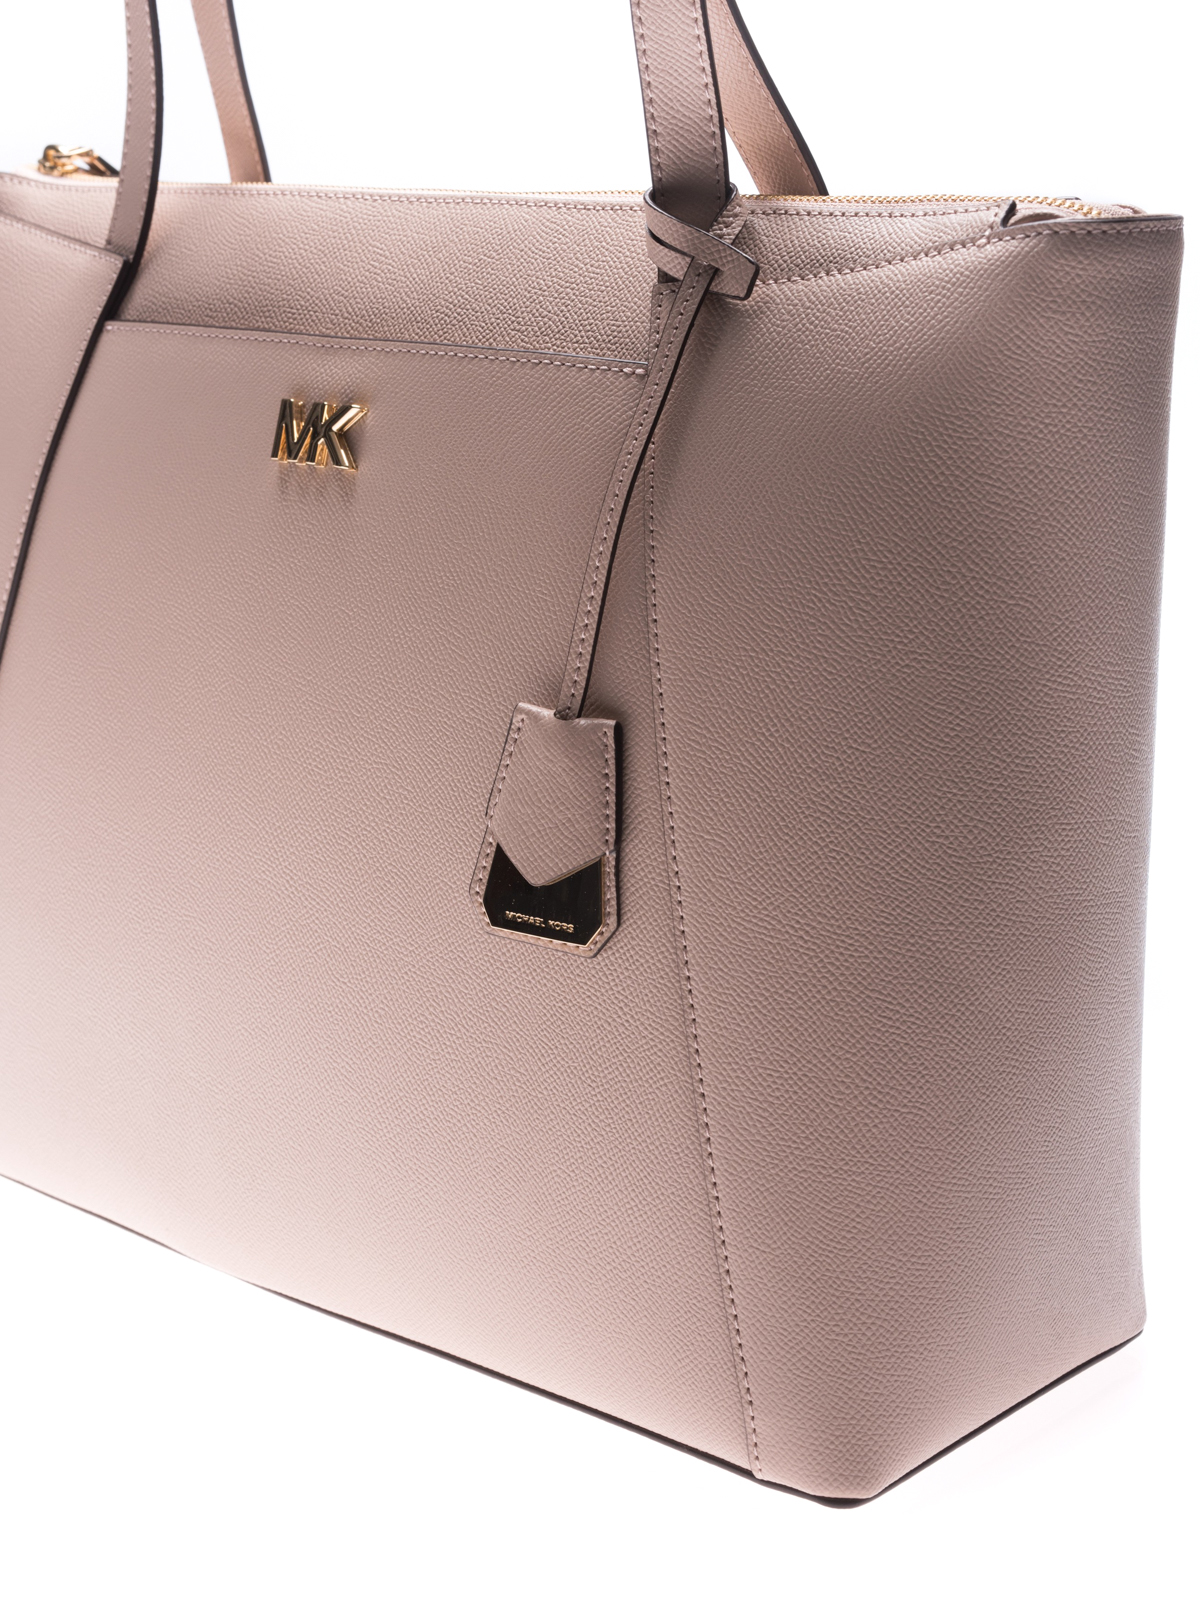 90926eec6f23 Maddie leather shopping bag shop online: MICHAEL KORS · MICHAEL KORS: totes  bags ...